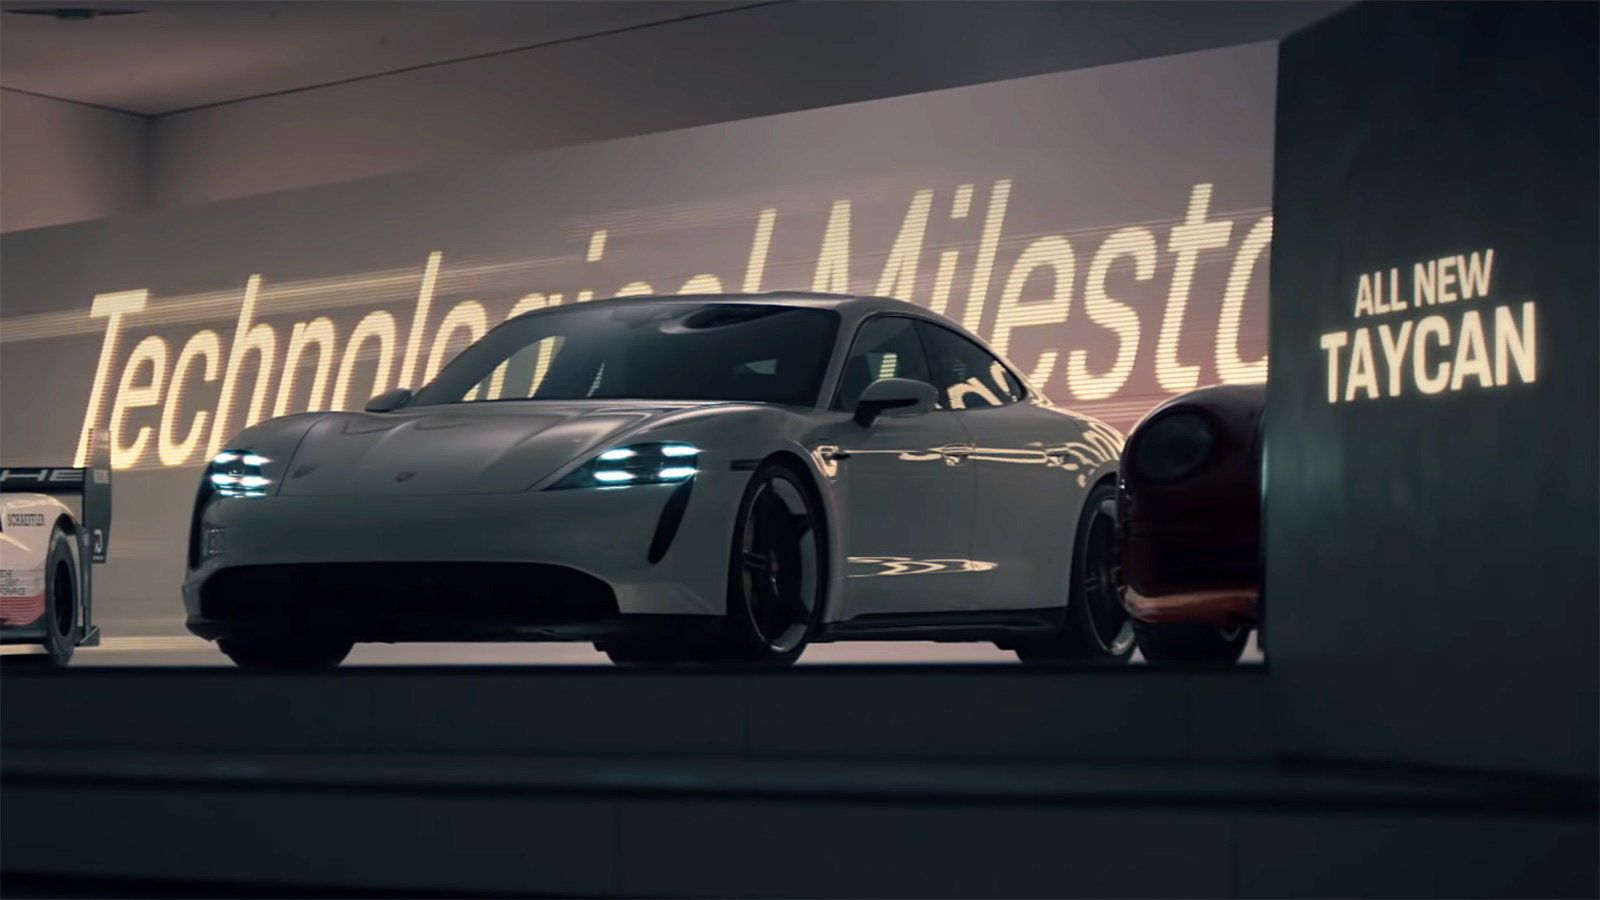 Porsche Kills It With Their New Super Bowl Ad In 2020 Super Bowl Porsche Taycan Porsche